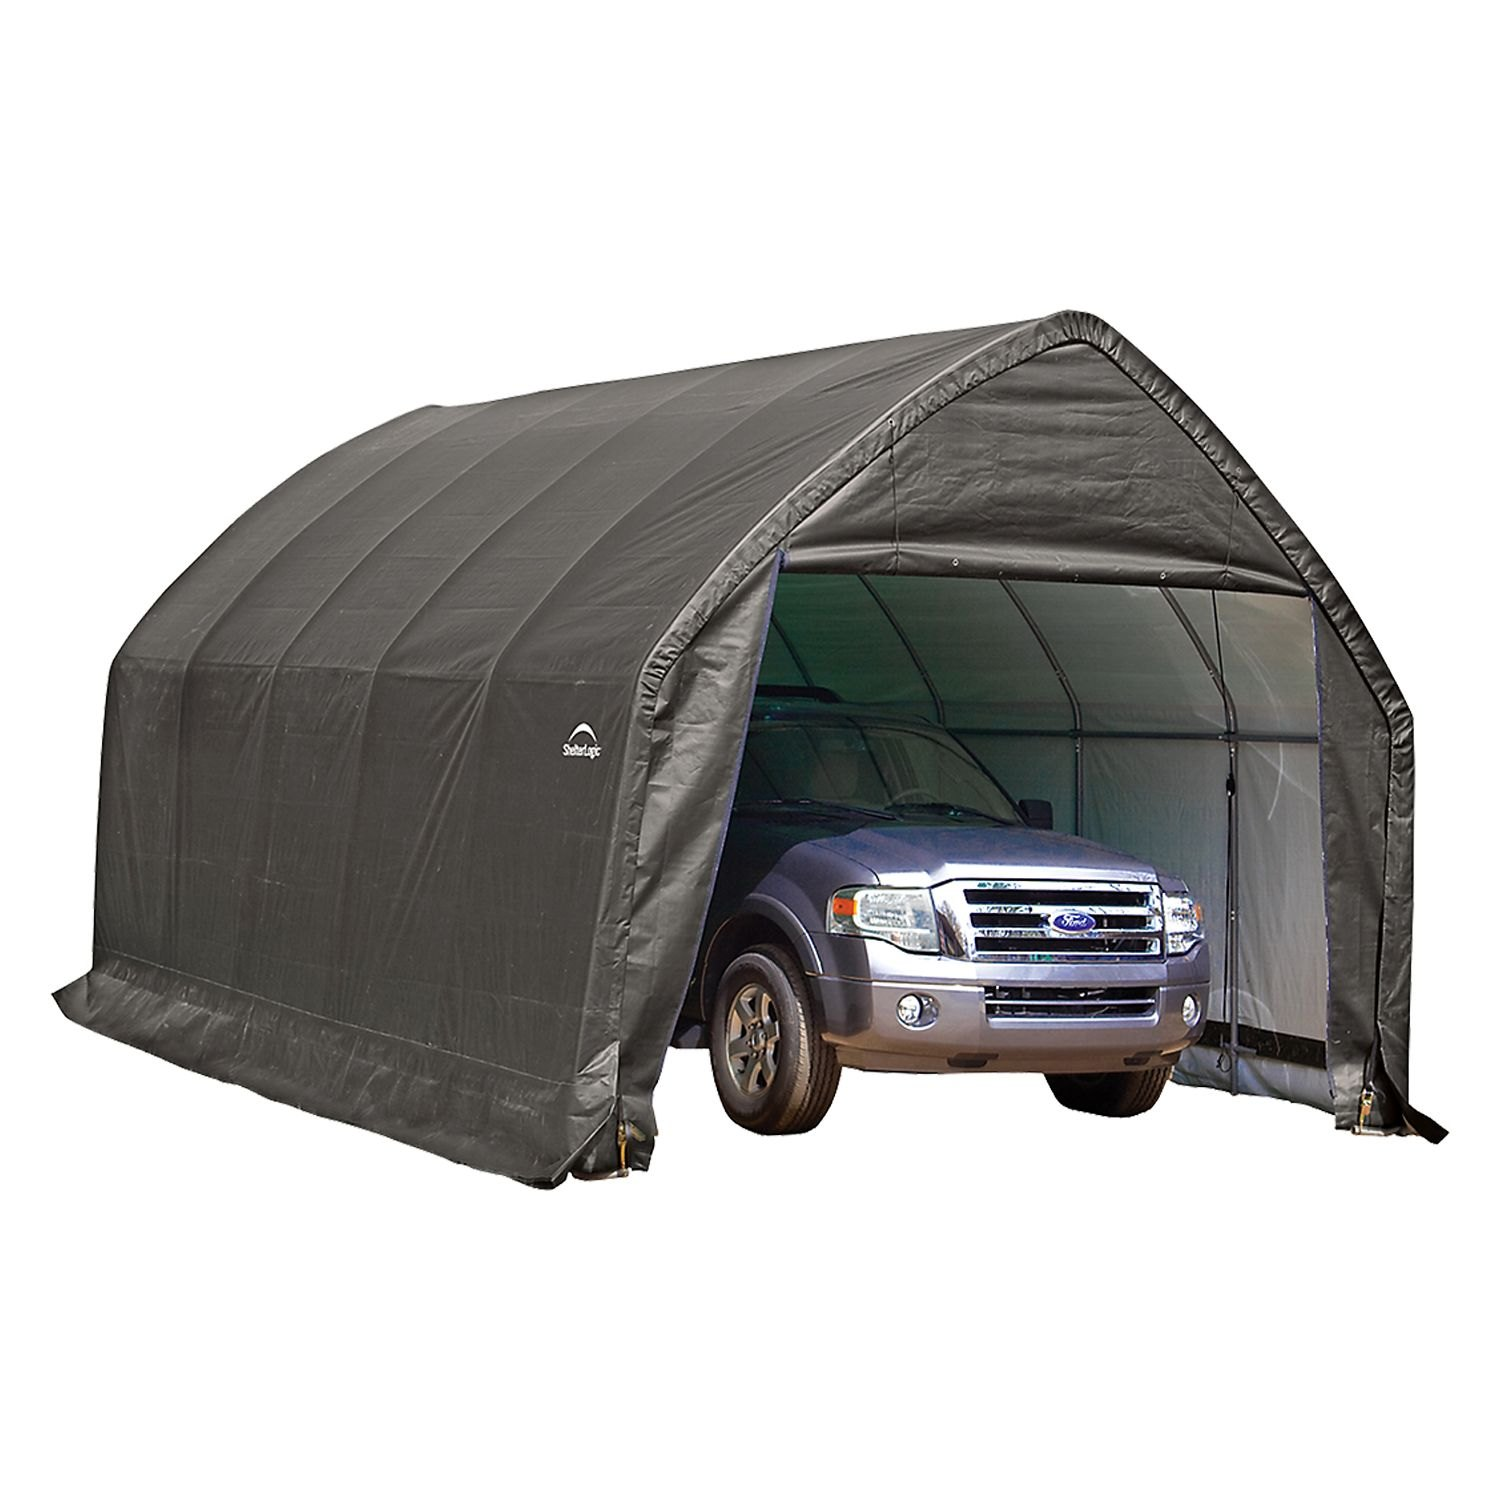 motorcycle canopy gray storage sports x in ft garage shelterlogic metal outdoor a itm box